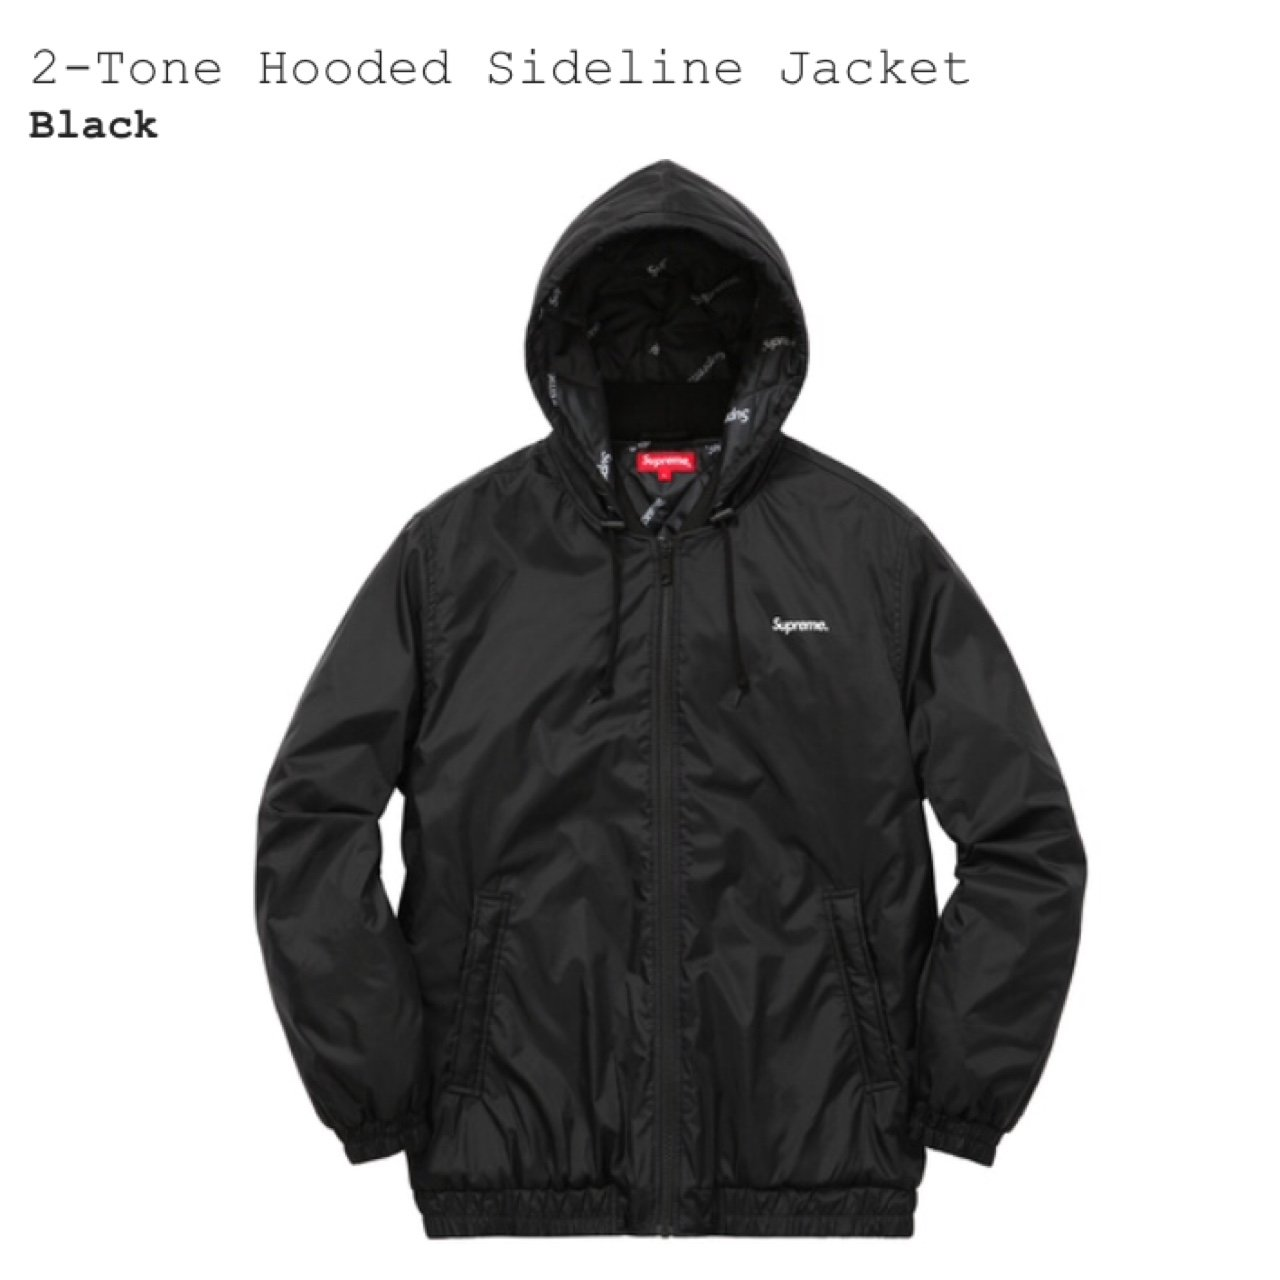 a791445251bb SUPREME 2 TONE HOODED SIDELINE JACKET BLACK LARGE - Depop